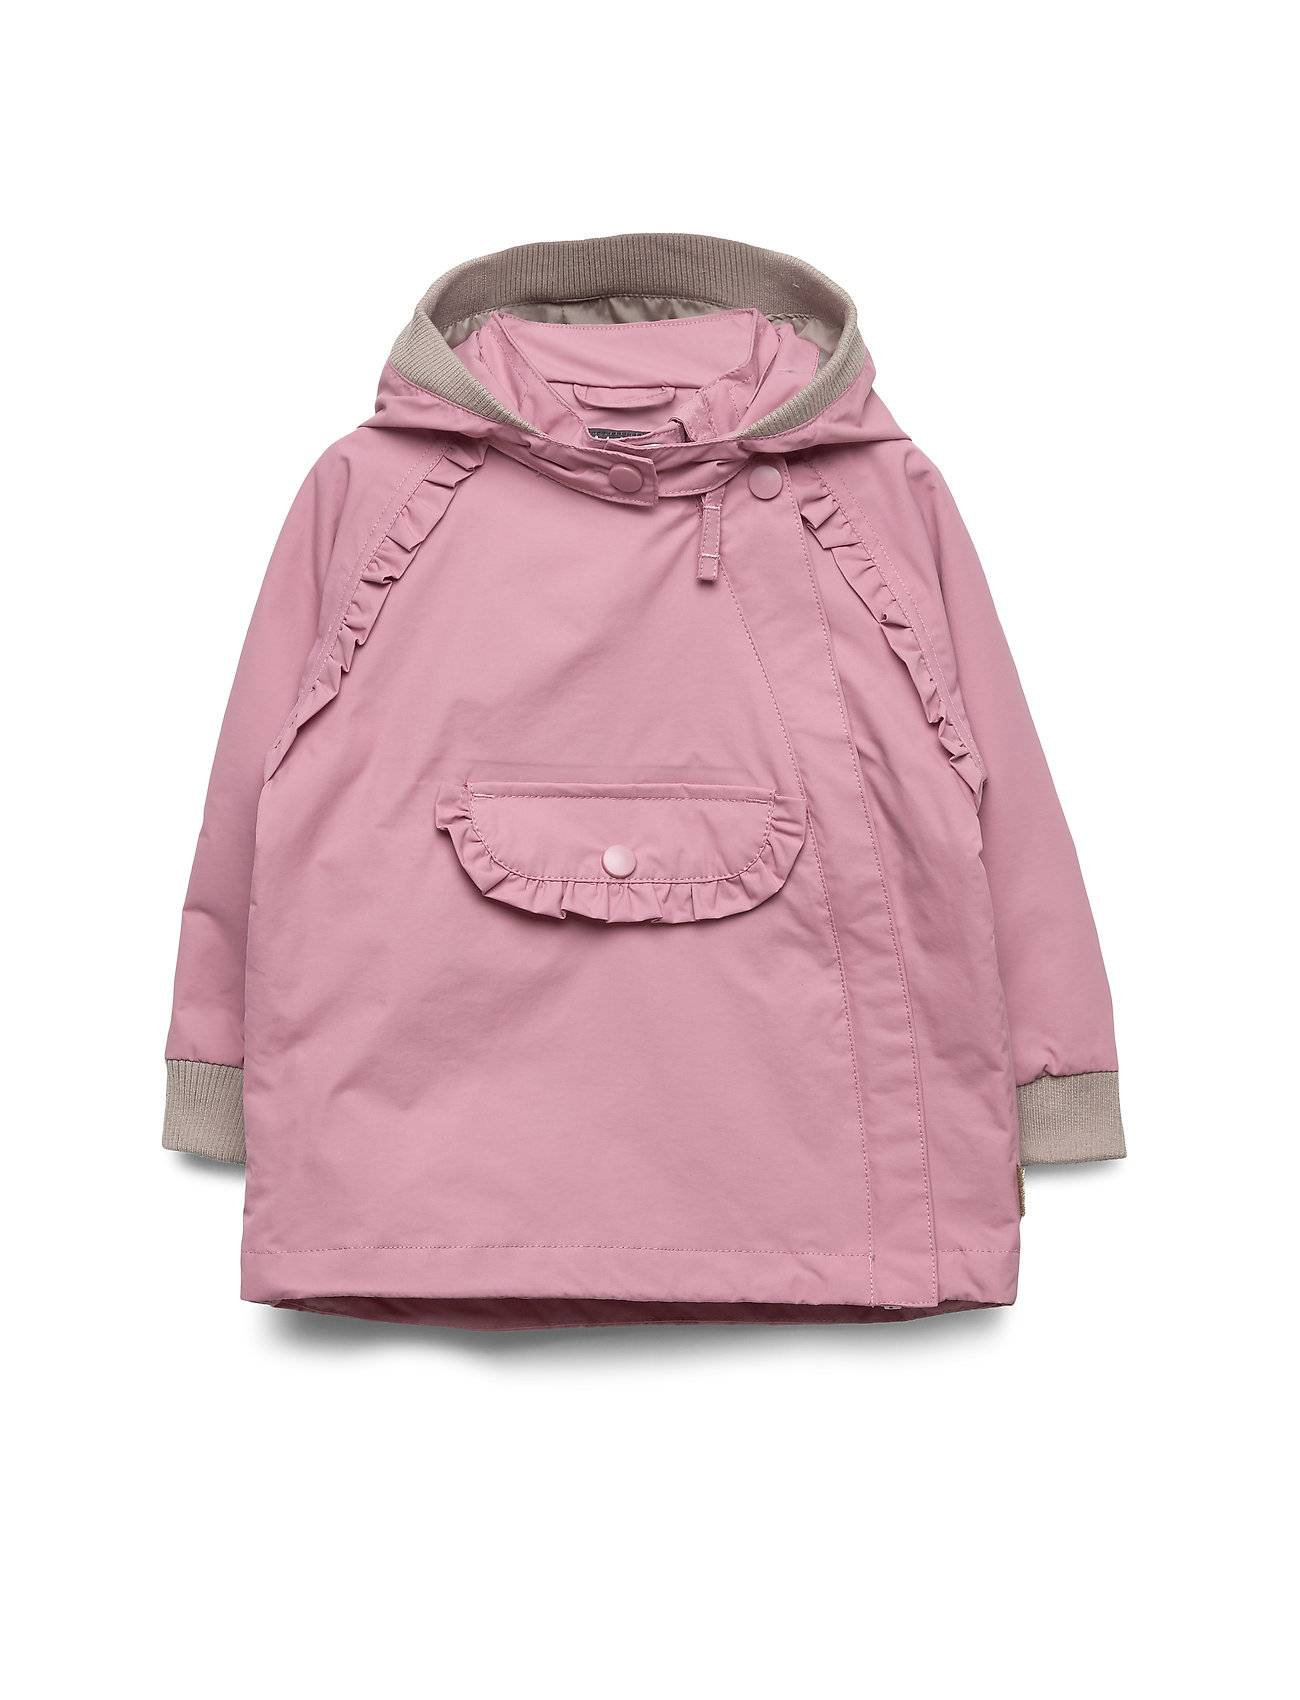 Hust & Claire Obia - Jacket Outerwear Rainwear Jackets Vaaleanpunainen Hust & Claire